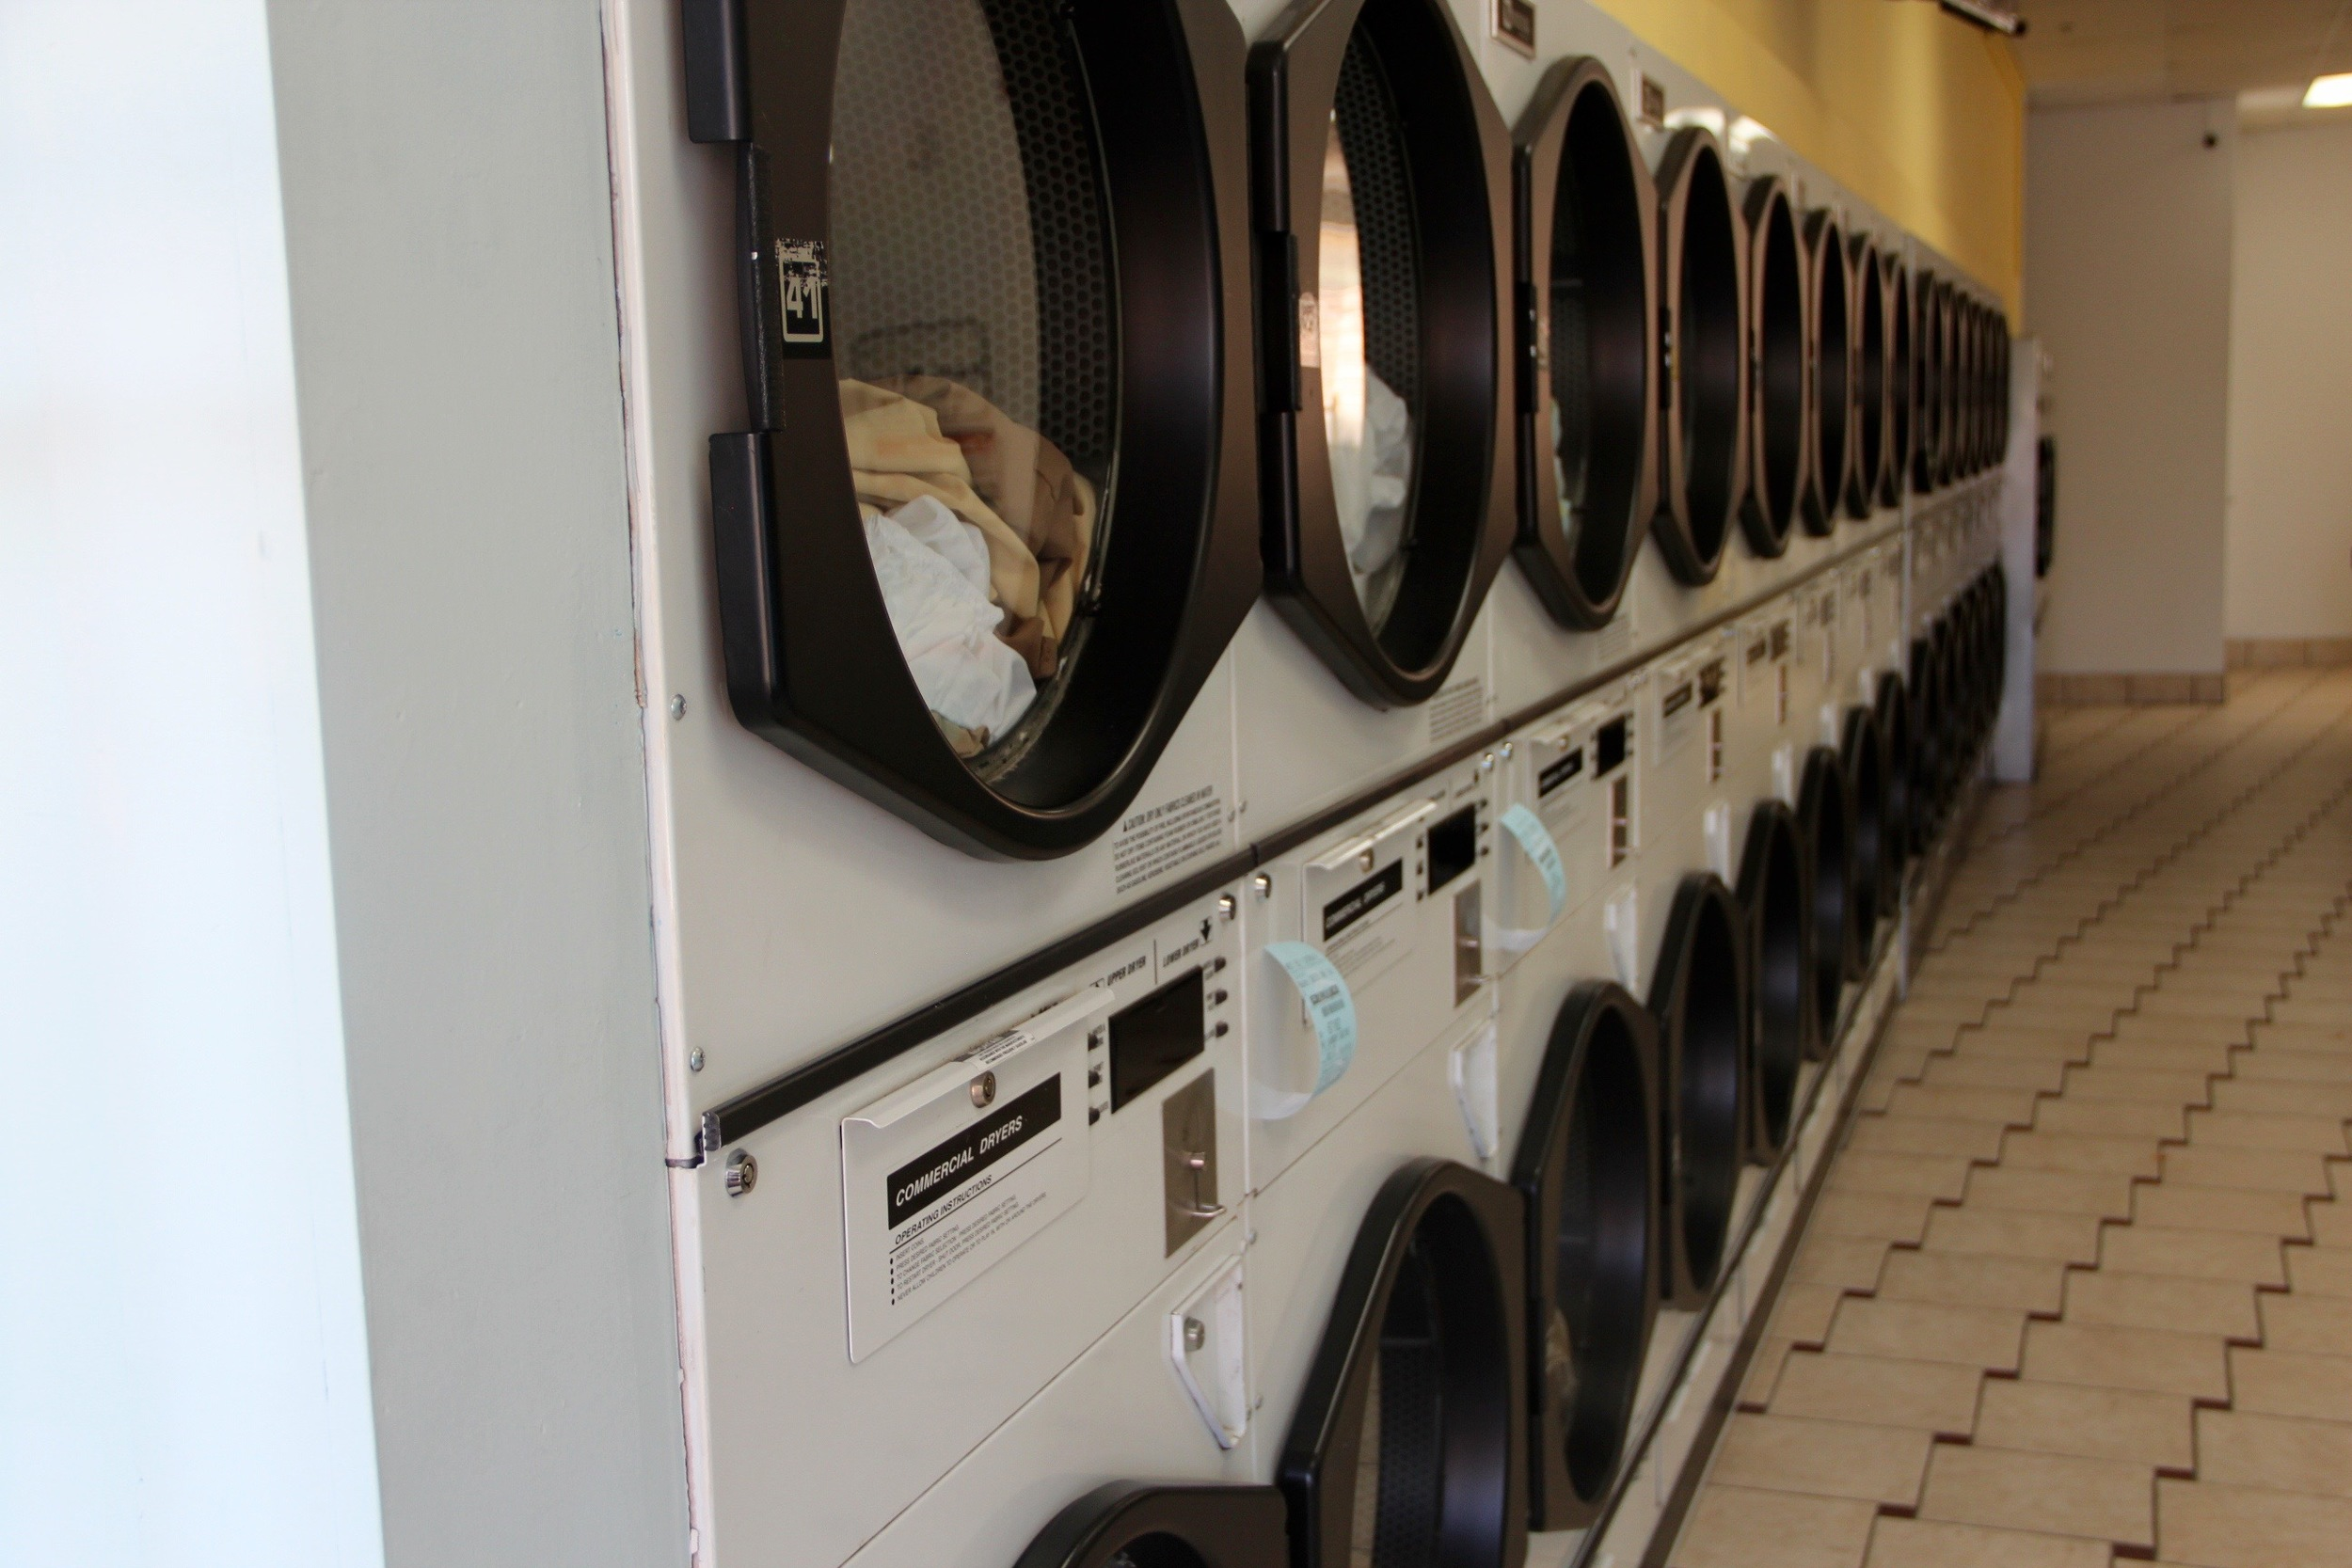 A row of dryers at Rainbow Laundry MPLS in Uptown Minneapolis, MN.  Rainbow Laundry MPLS Laundromat Dry Cleaning Wash & Fold Alterations   Michael Mike Kulik MKtechMPLS MKtech